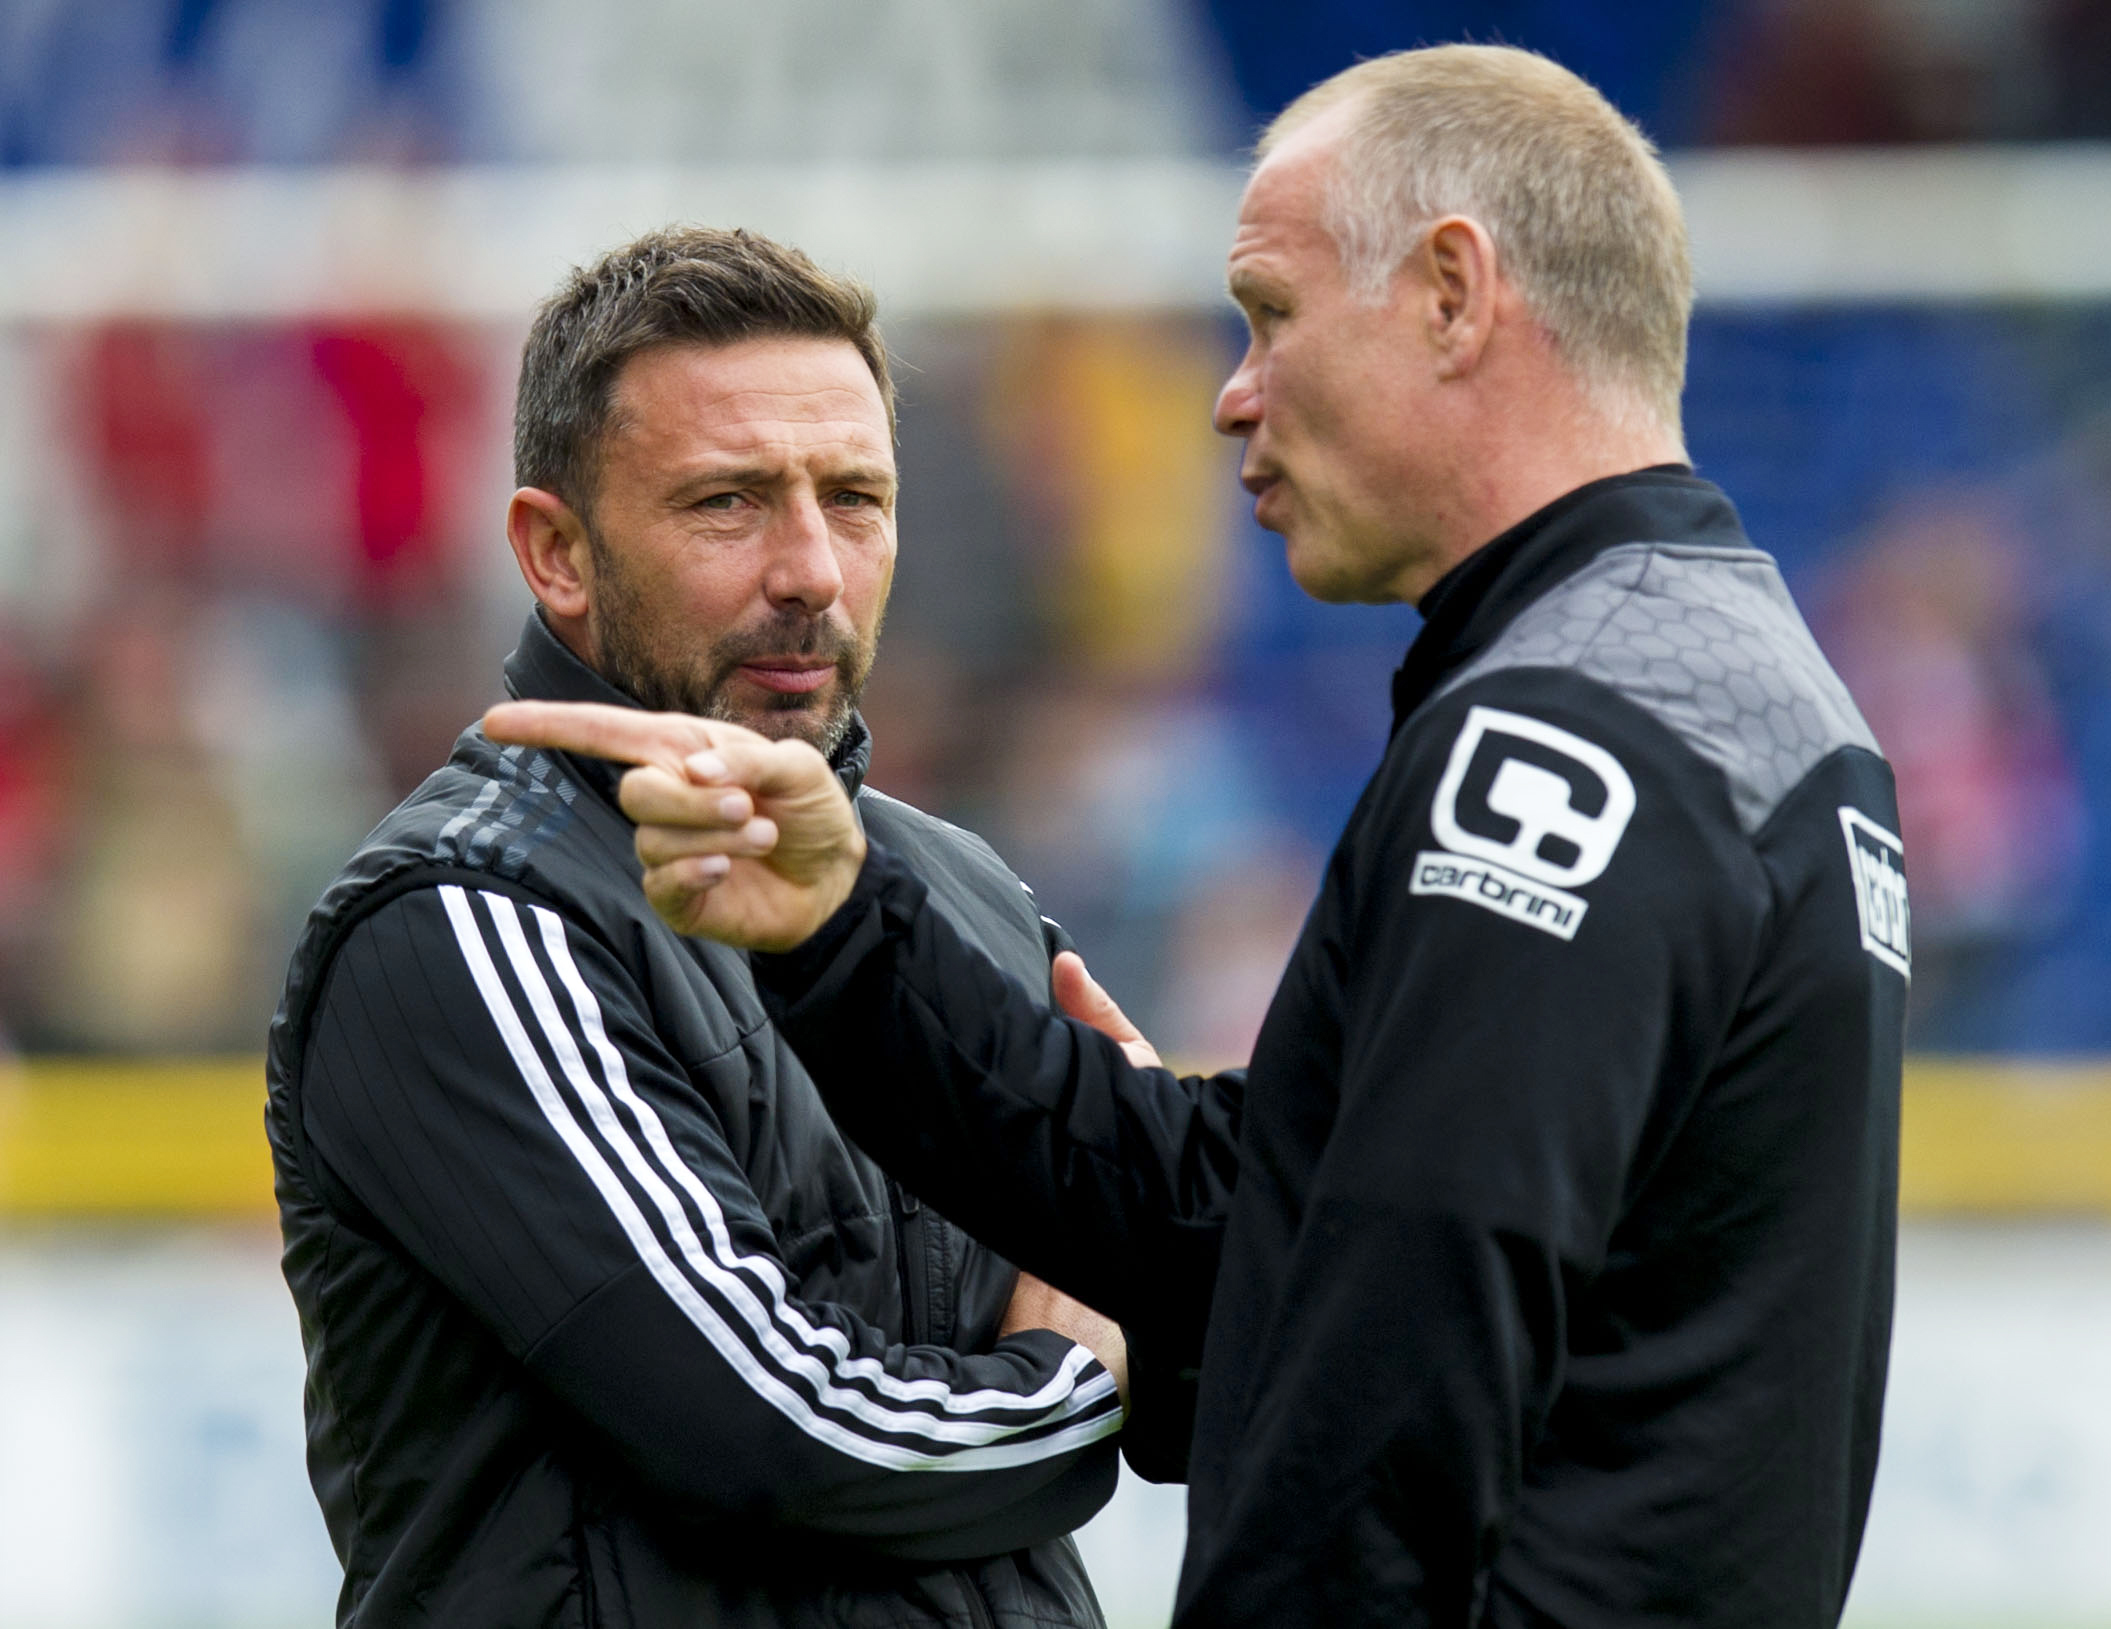 Aberdeen's Derek McInnes insisted there's no problem with Inverness' John Hughes after the collapse of the Tansey deal.